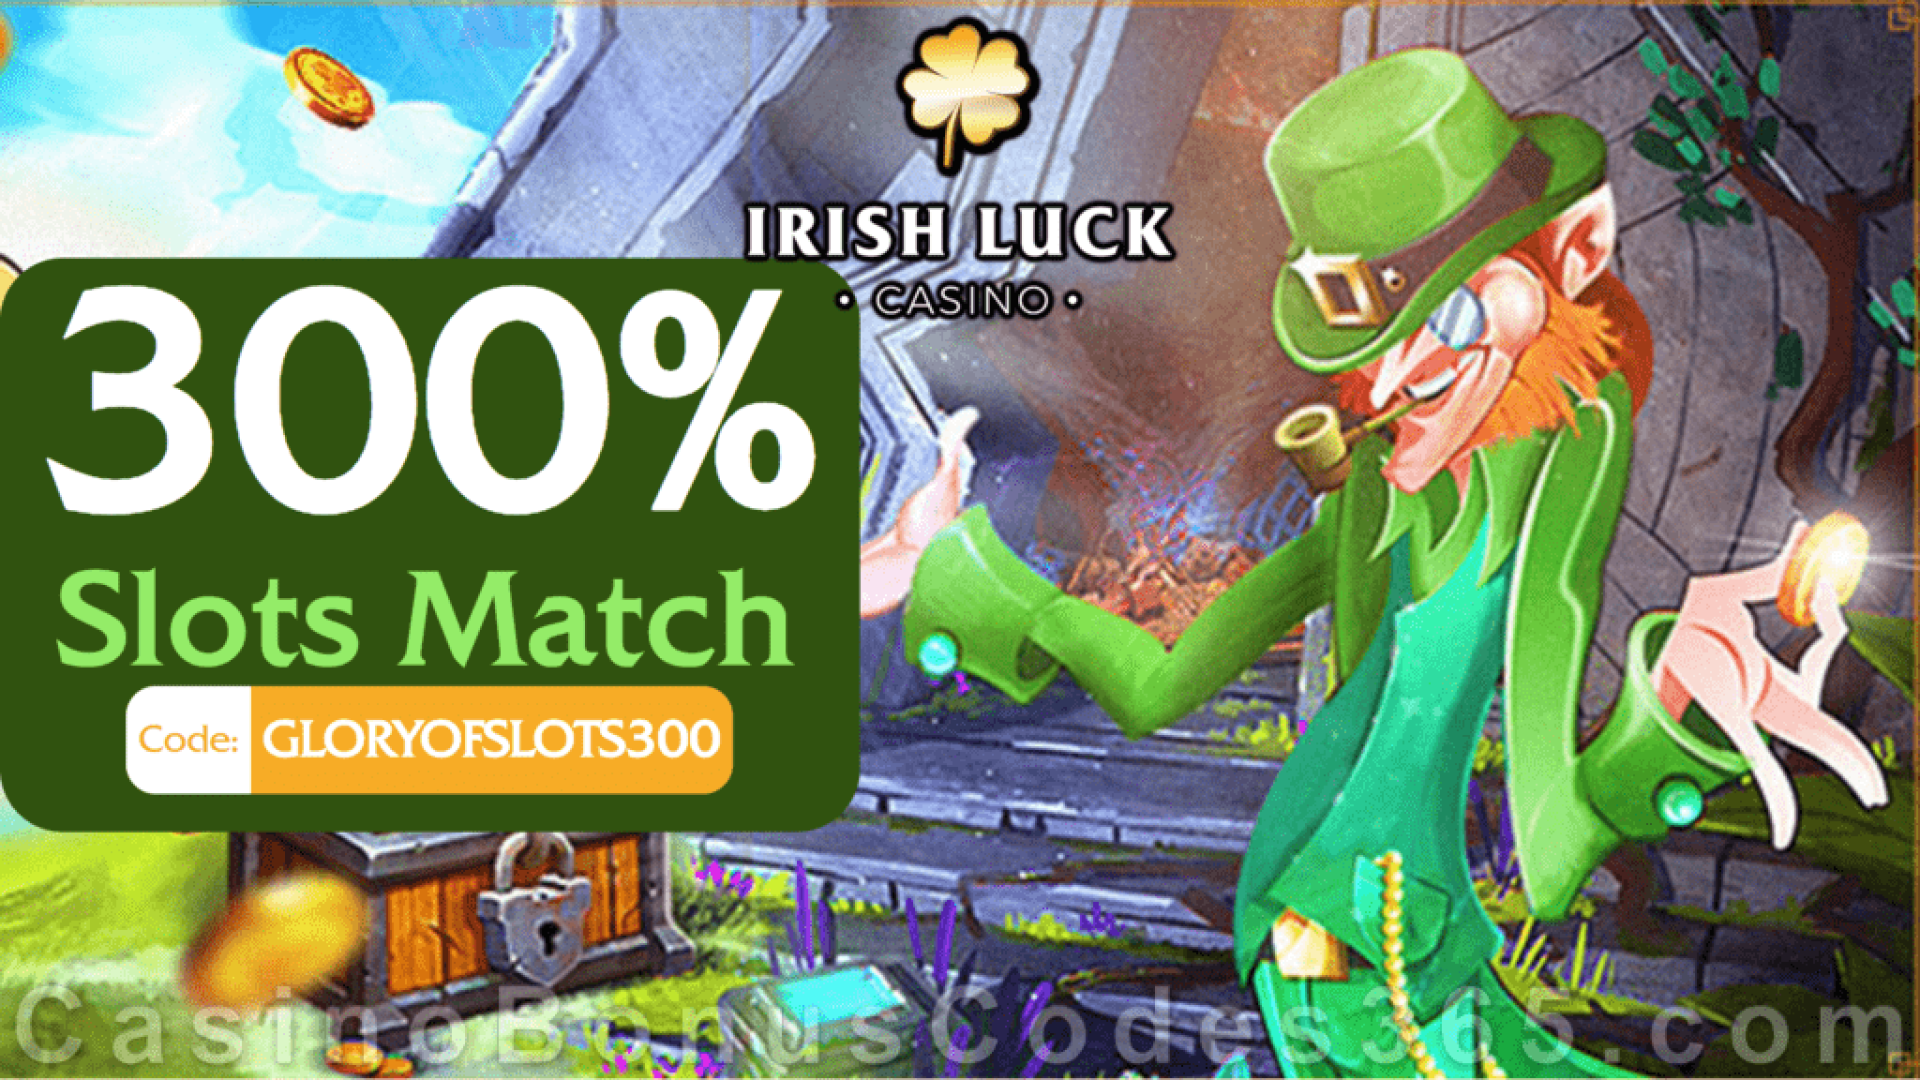 IrishLuck Casino 300% Slots Match Exclusive Welcome Bonus